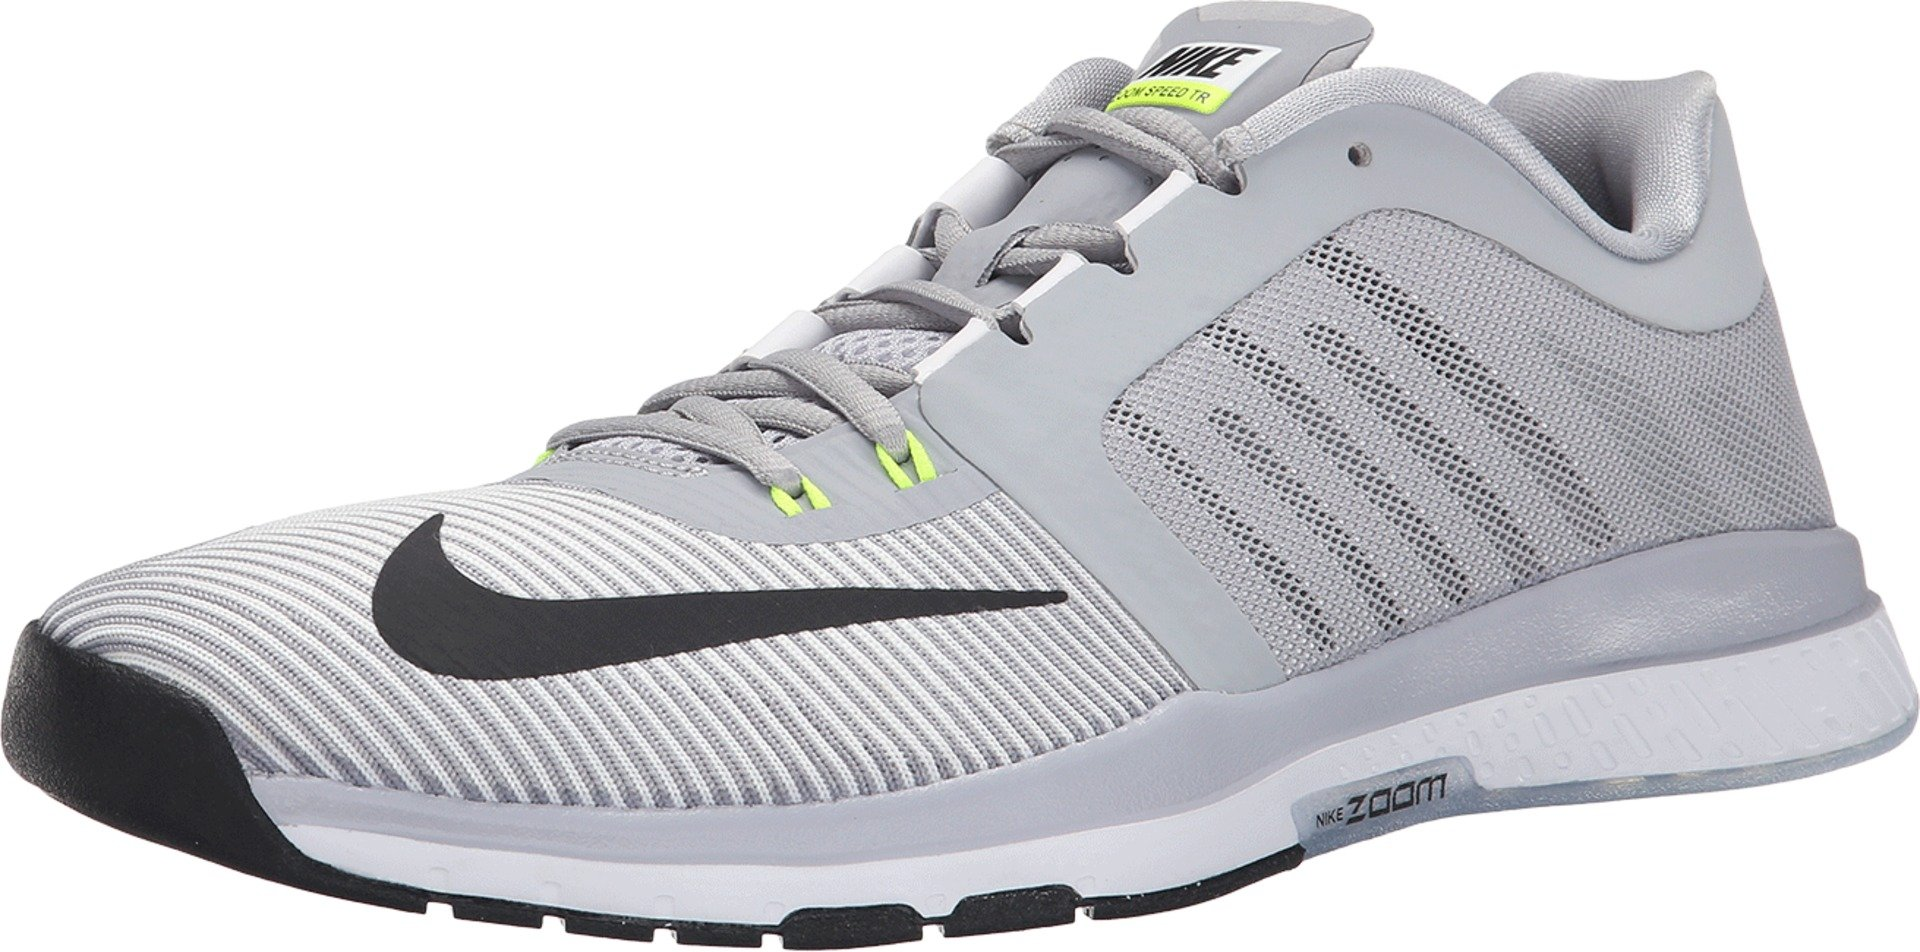 dirt cheap newest collection reasonably priced Nike Zoom Speed TR 3 Mens Cross Training Shoes 7 D - Medium